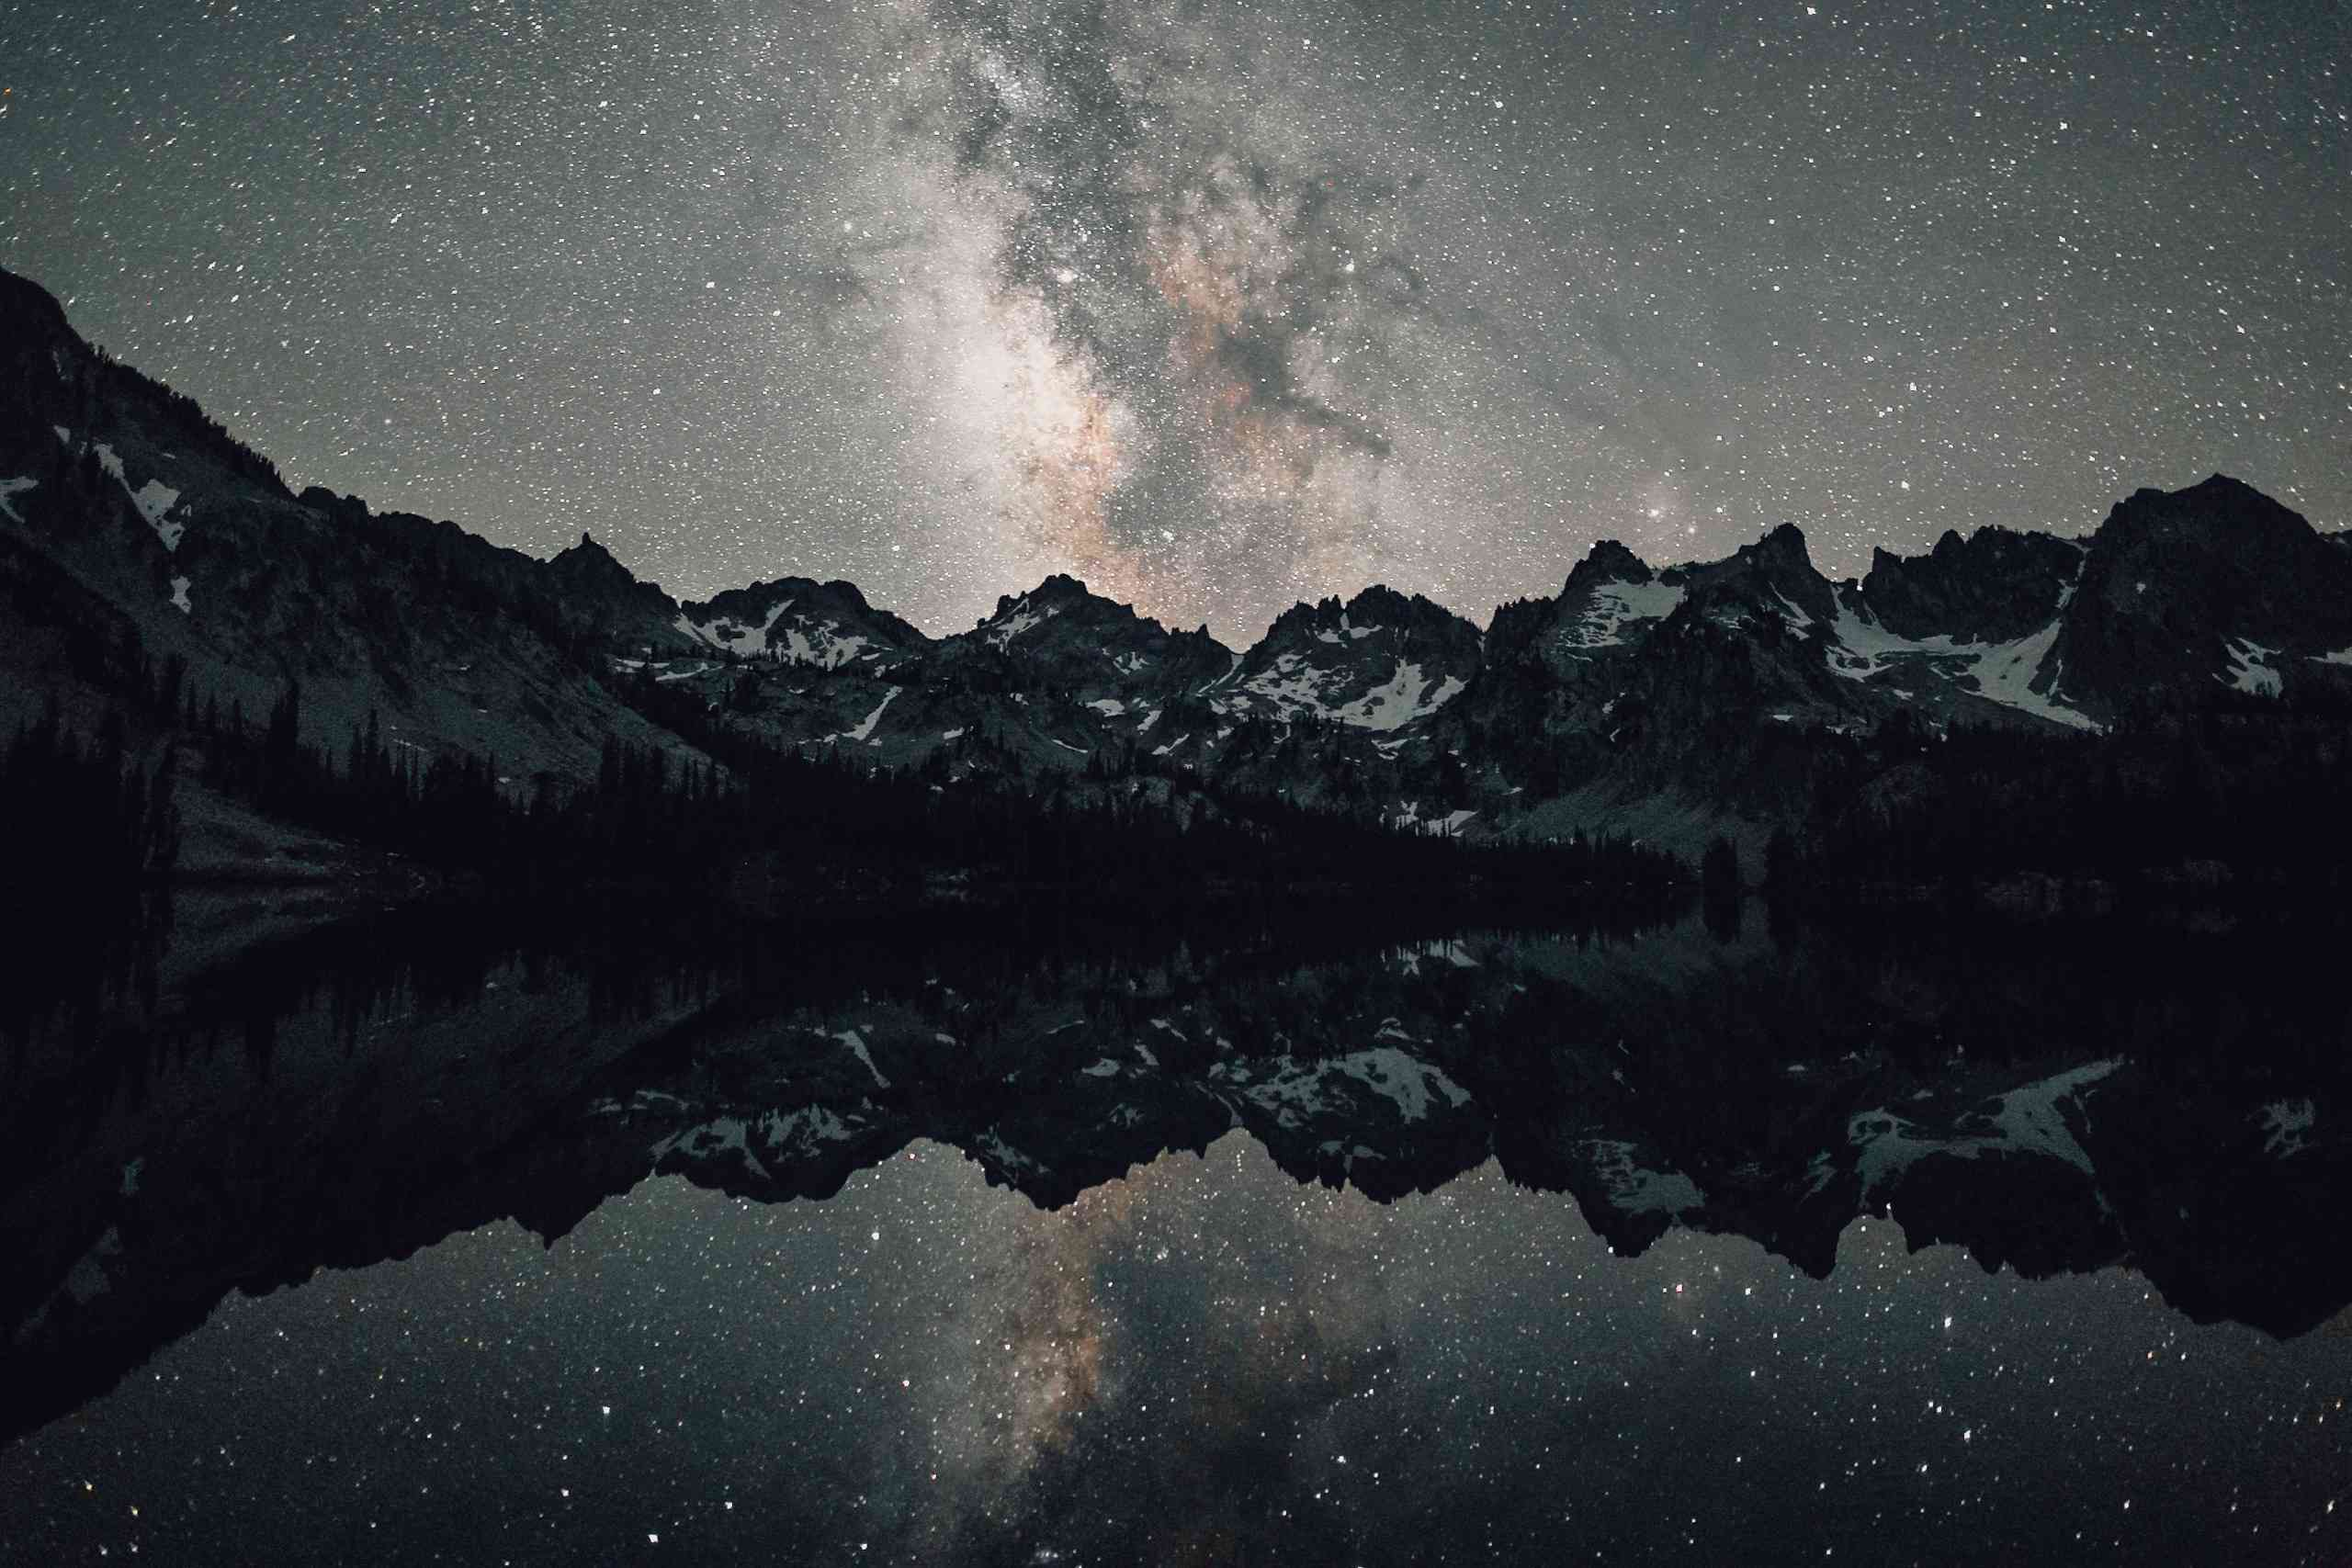 Milky Way over snowy mountains reflecting on lake